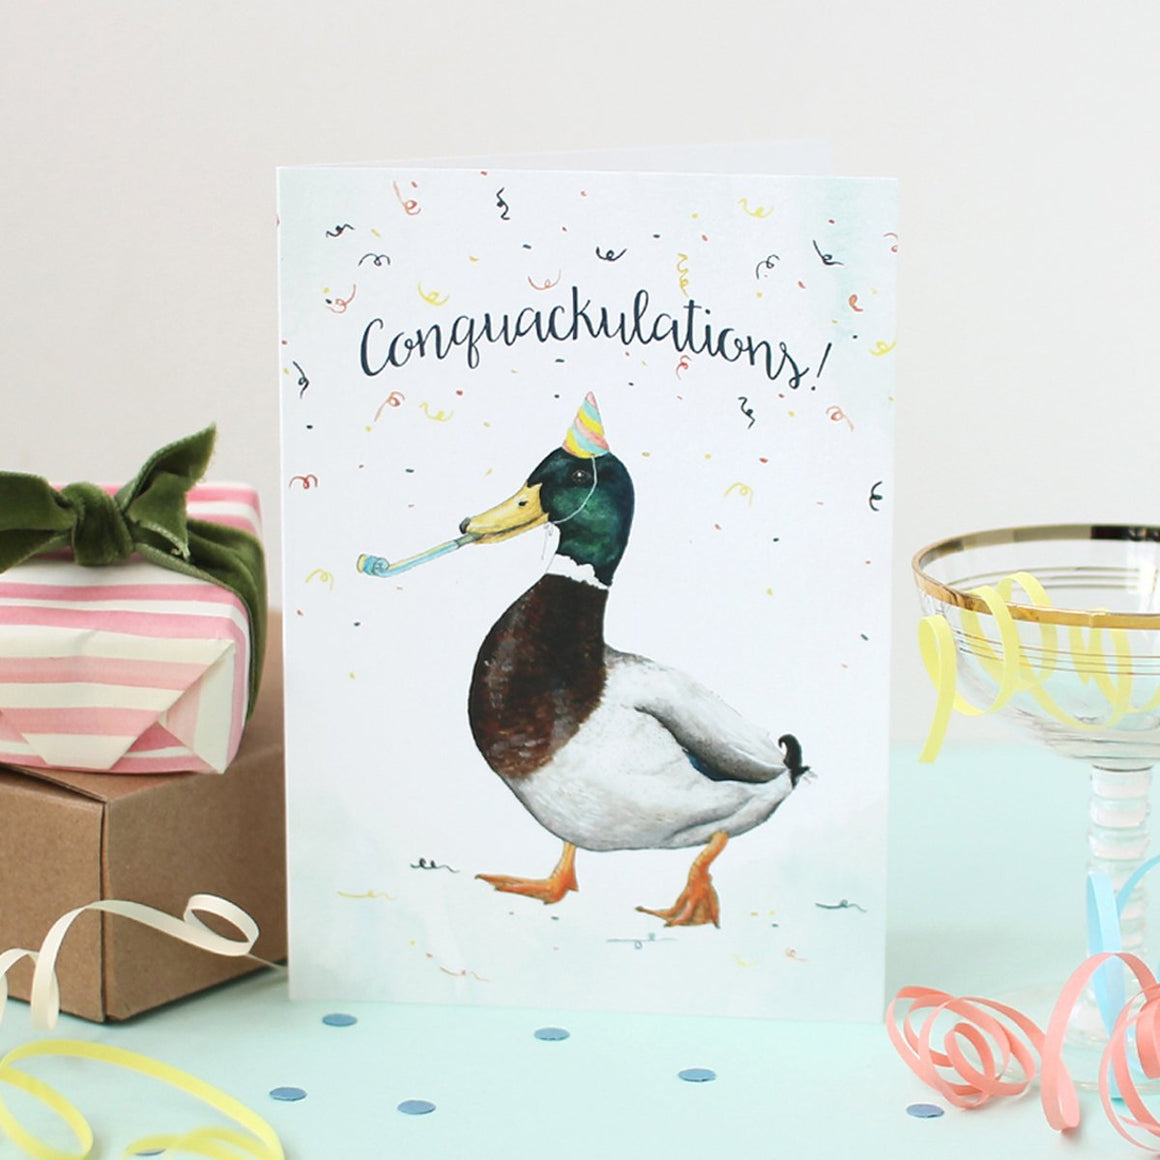 Mister Peebles Greeting Card 'Conquackulations!'